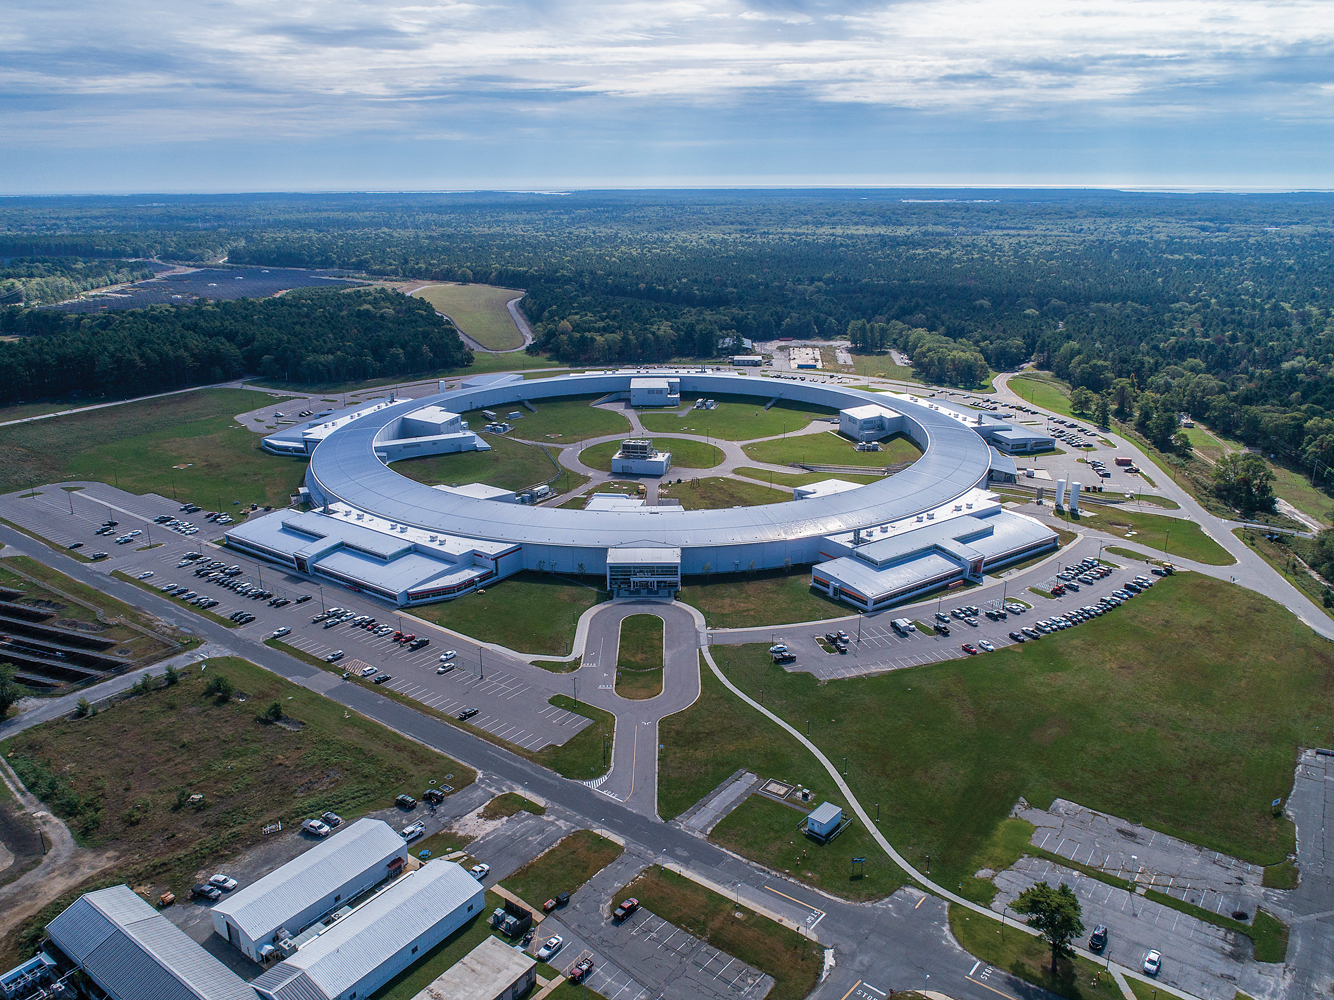 BNL's NSLS-II is one of the most advanced synchrotron facilities in the world. Next for the lab is the addition of a $1 to $2 billion Electron Ion Collider, which will keep BNL and SBU researchers at the forefront of nuclear science.